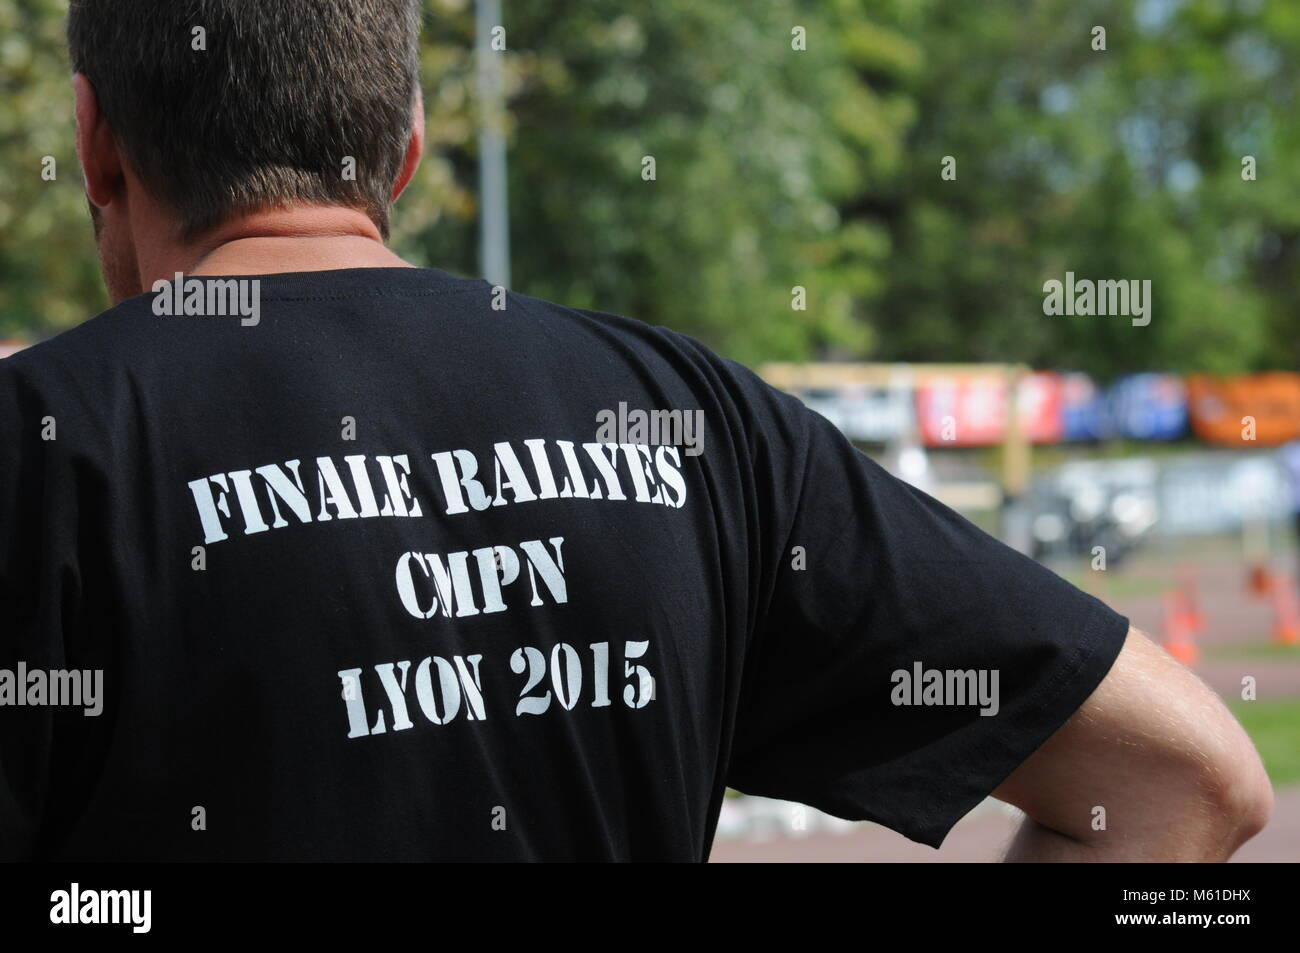 Police motorcyclists attend  the Finale of French National Police Rallye, Sainte-Foy les Lyon, France - Stock Image